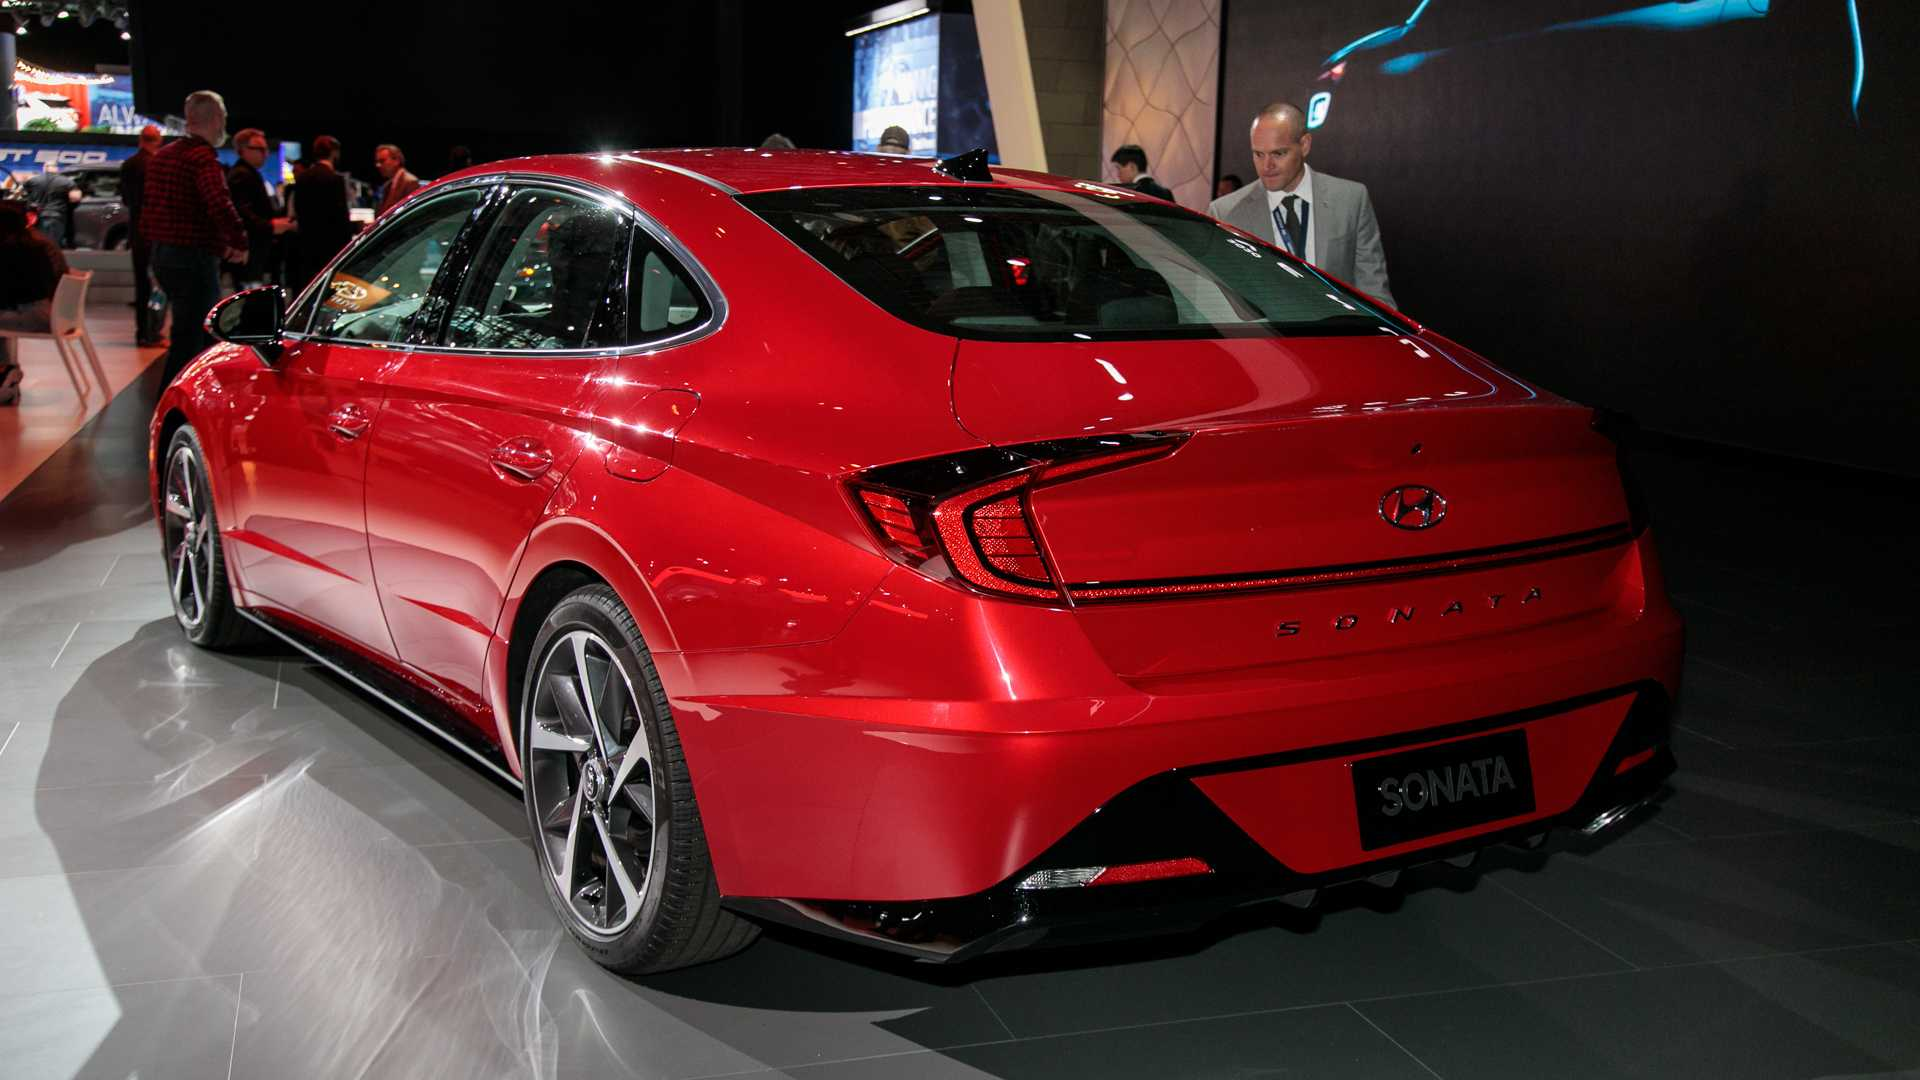 2020-hyundai-sonata-u-s-at-the-new-york-auto-show (2)